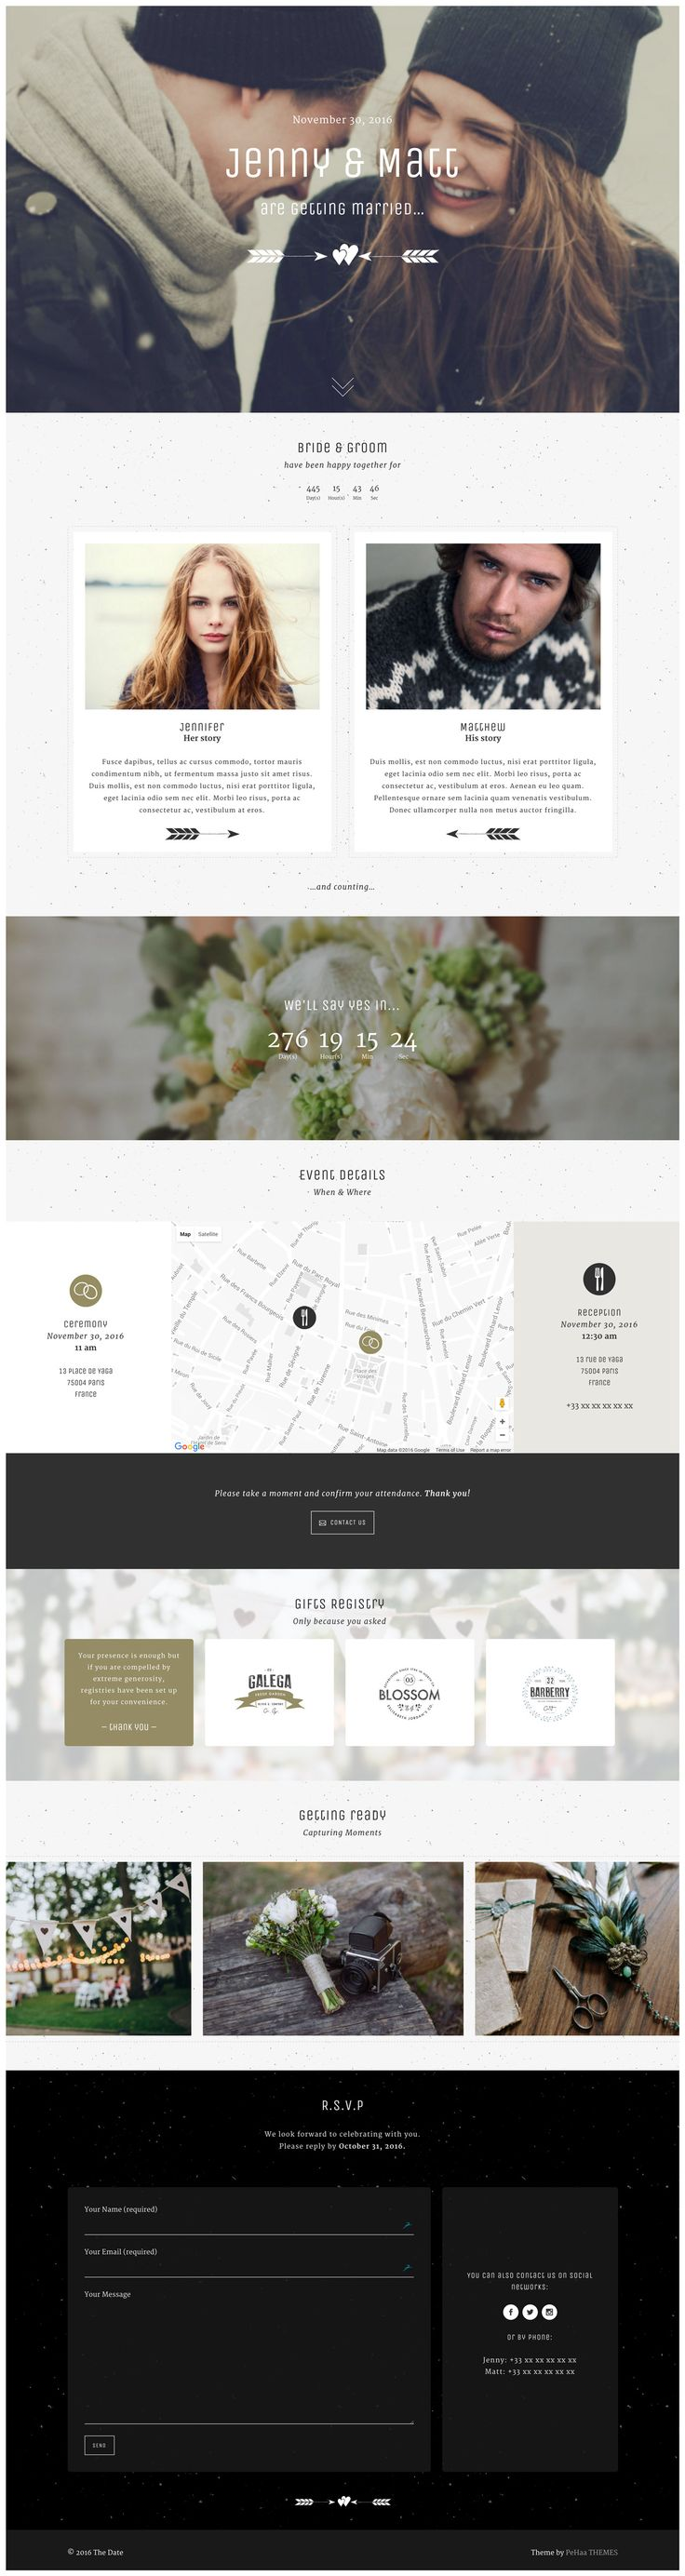 "'Yaga' is a WordPress theme that includes a (ready-to-install) One Page wedding layout option. PeHaa Themes have titled this lovely long-scrolling layout, ""The Date"". Features include a sticky header navigation bar, parallax scrolling effects, a countdown timer leading to the big date, venue map with 4 design options, smart image carousal and a footer with an RSVP form."